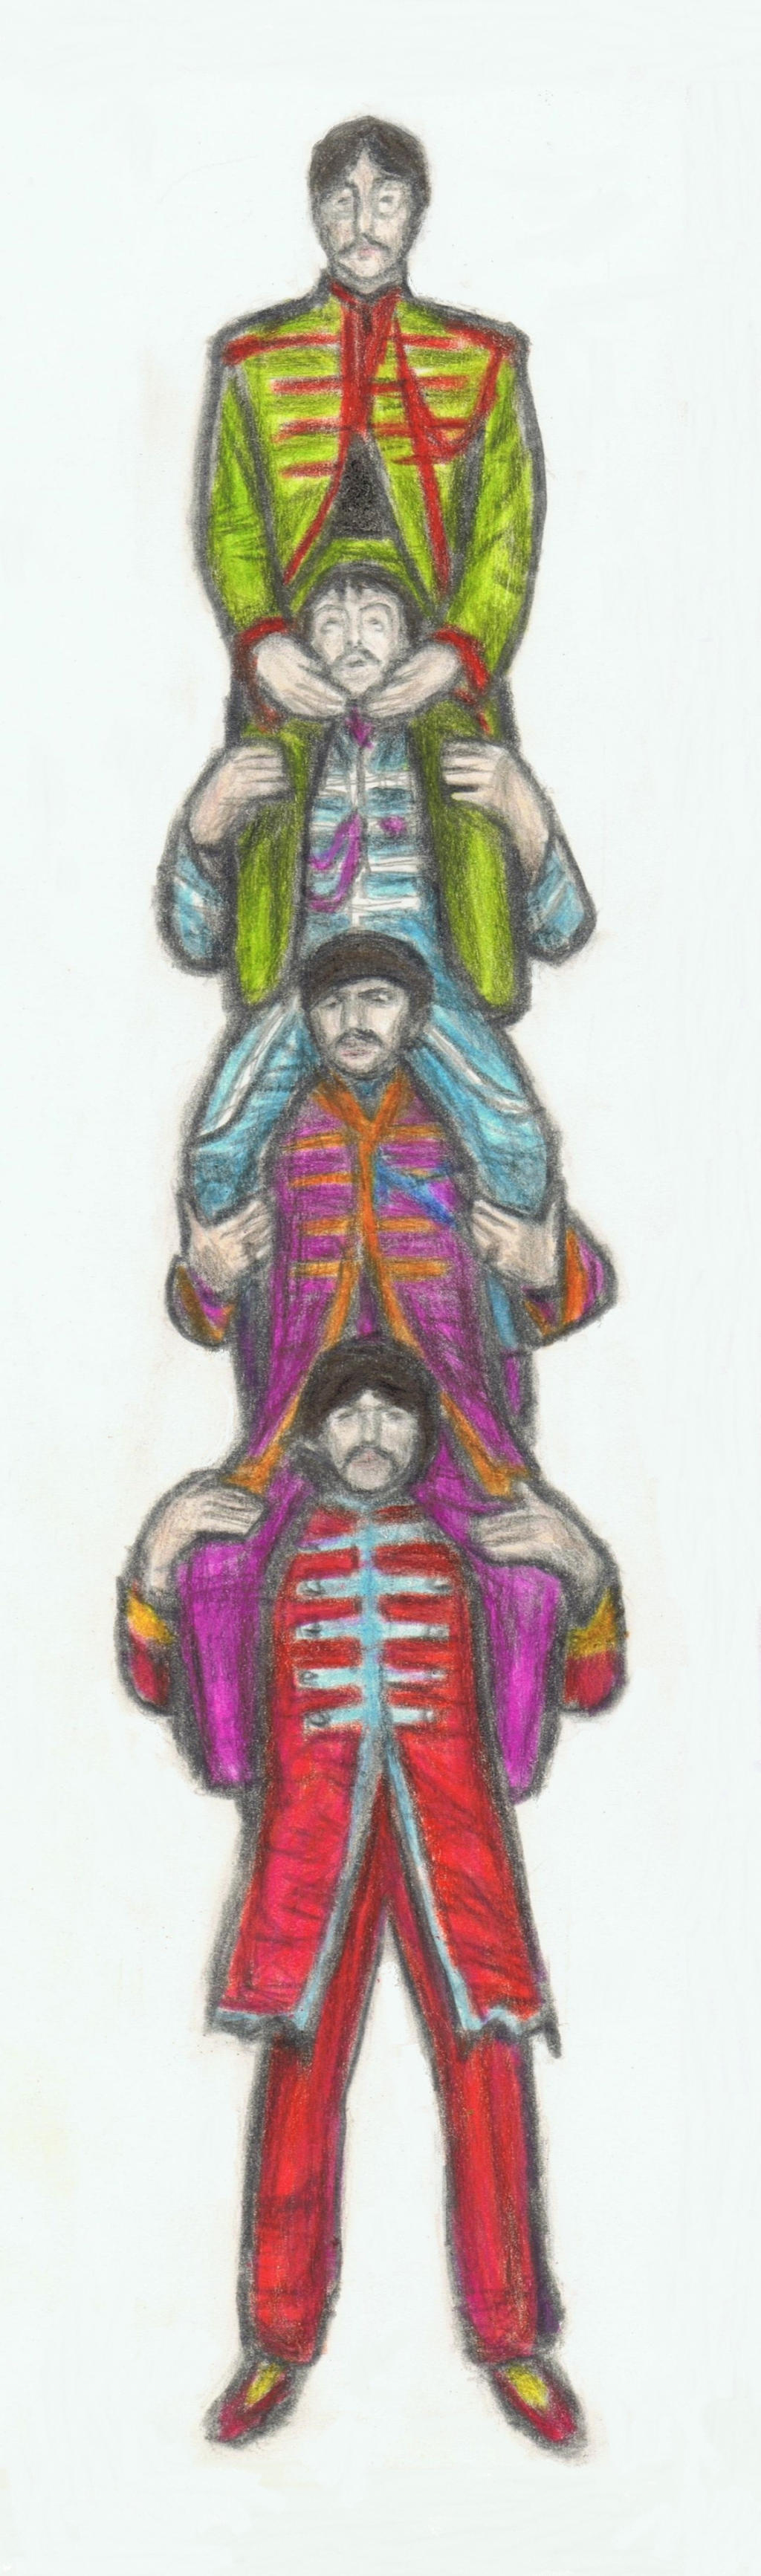 Sgt.Pepper's Lonely Hearts Club Band shoulder ride by gagambo